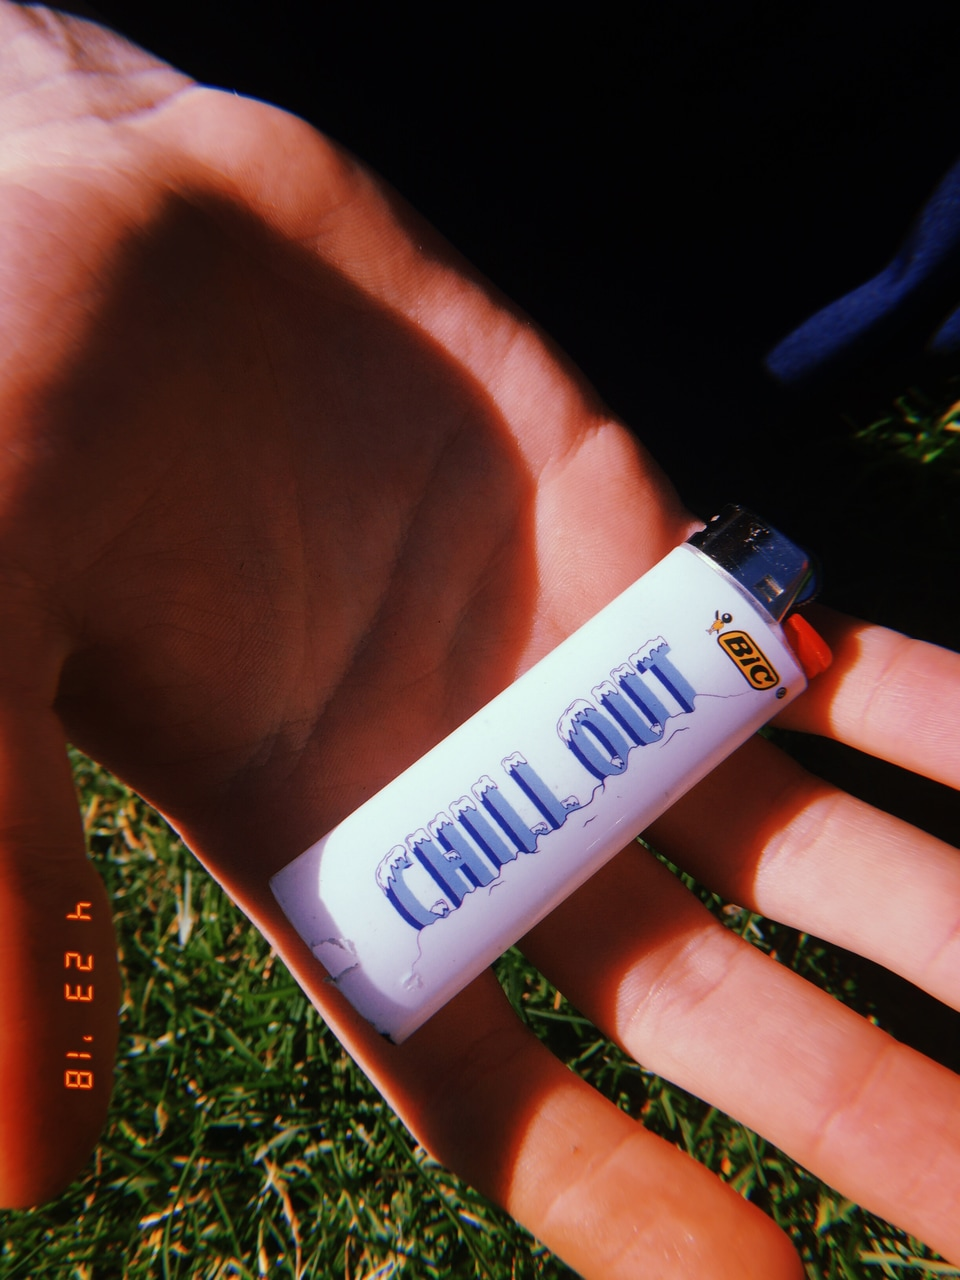 chill, drugs, cold and relax